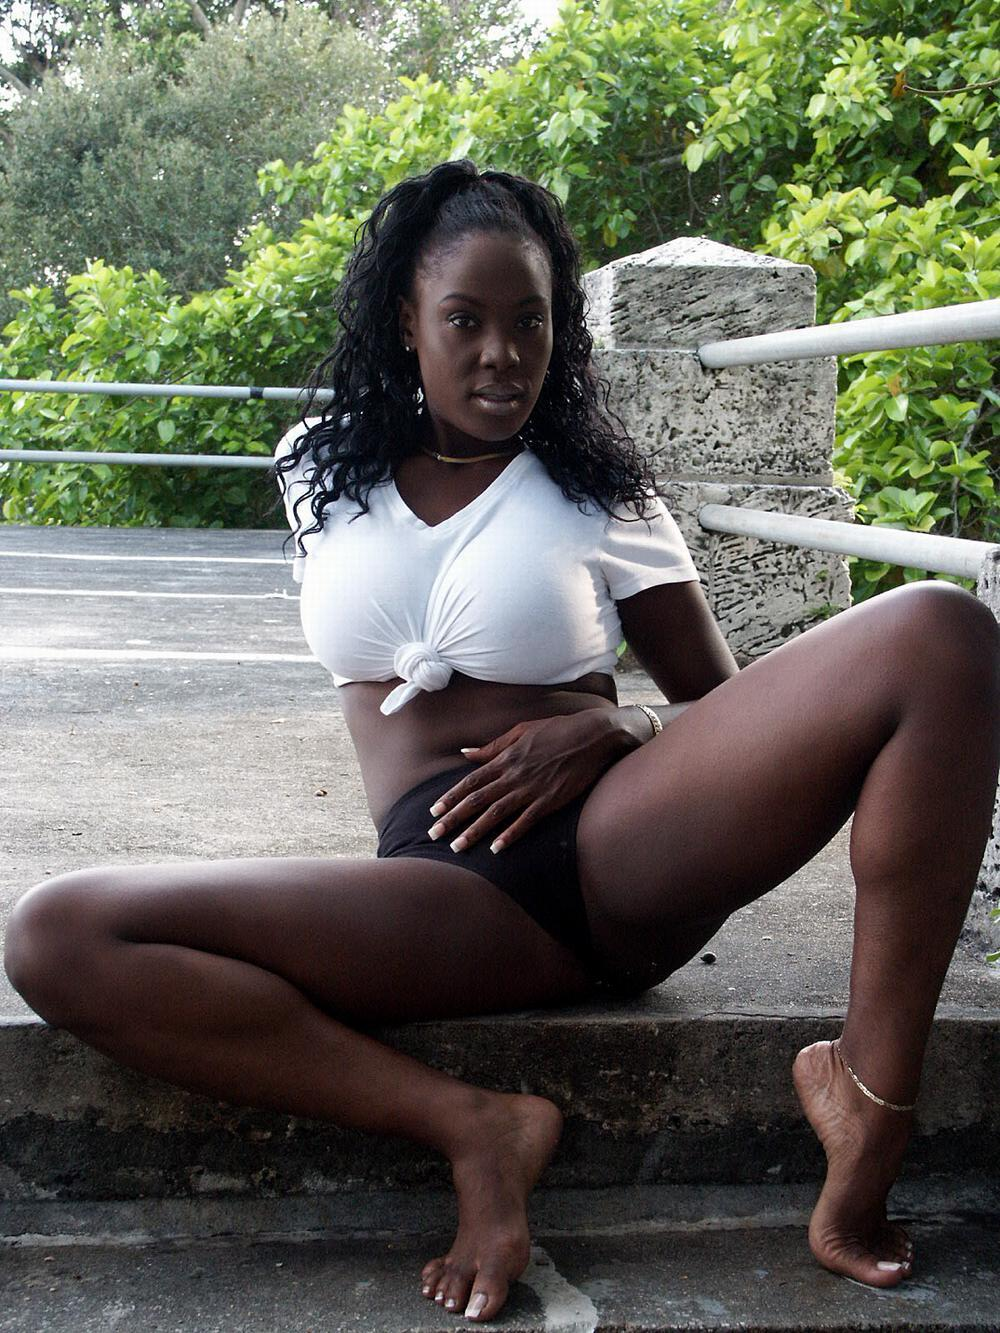 African babe and american man in hot interracial sex 8